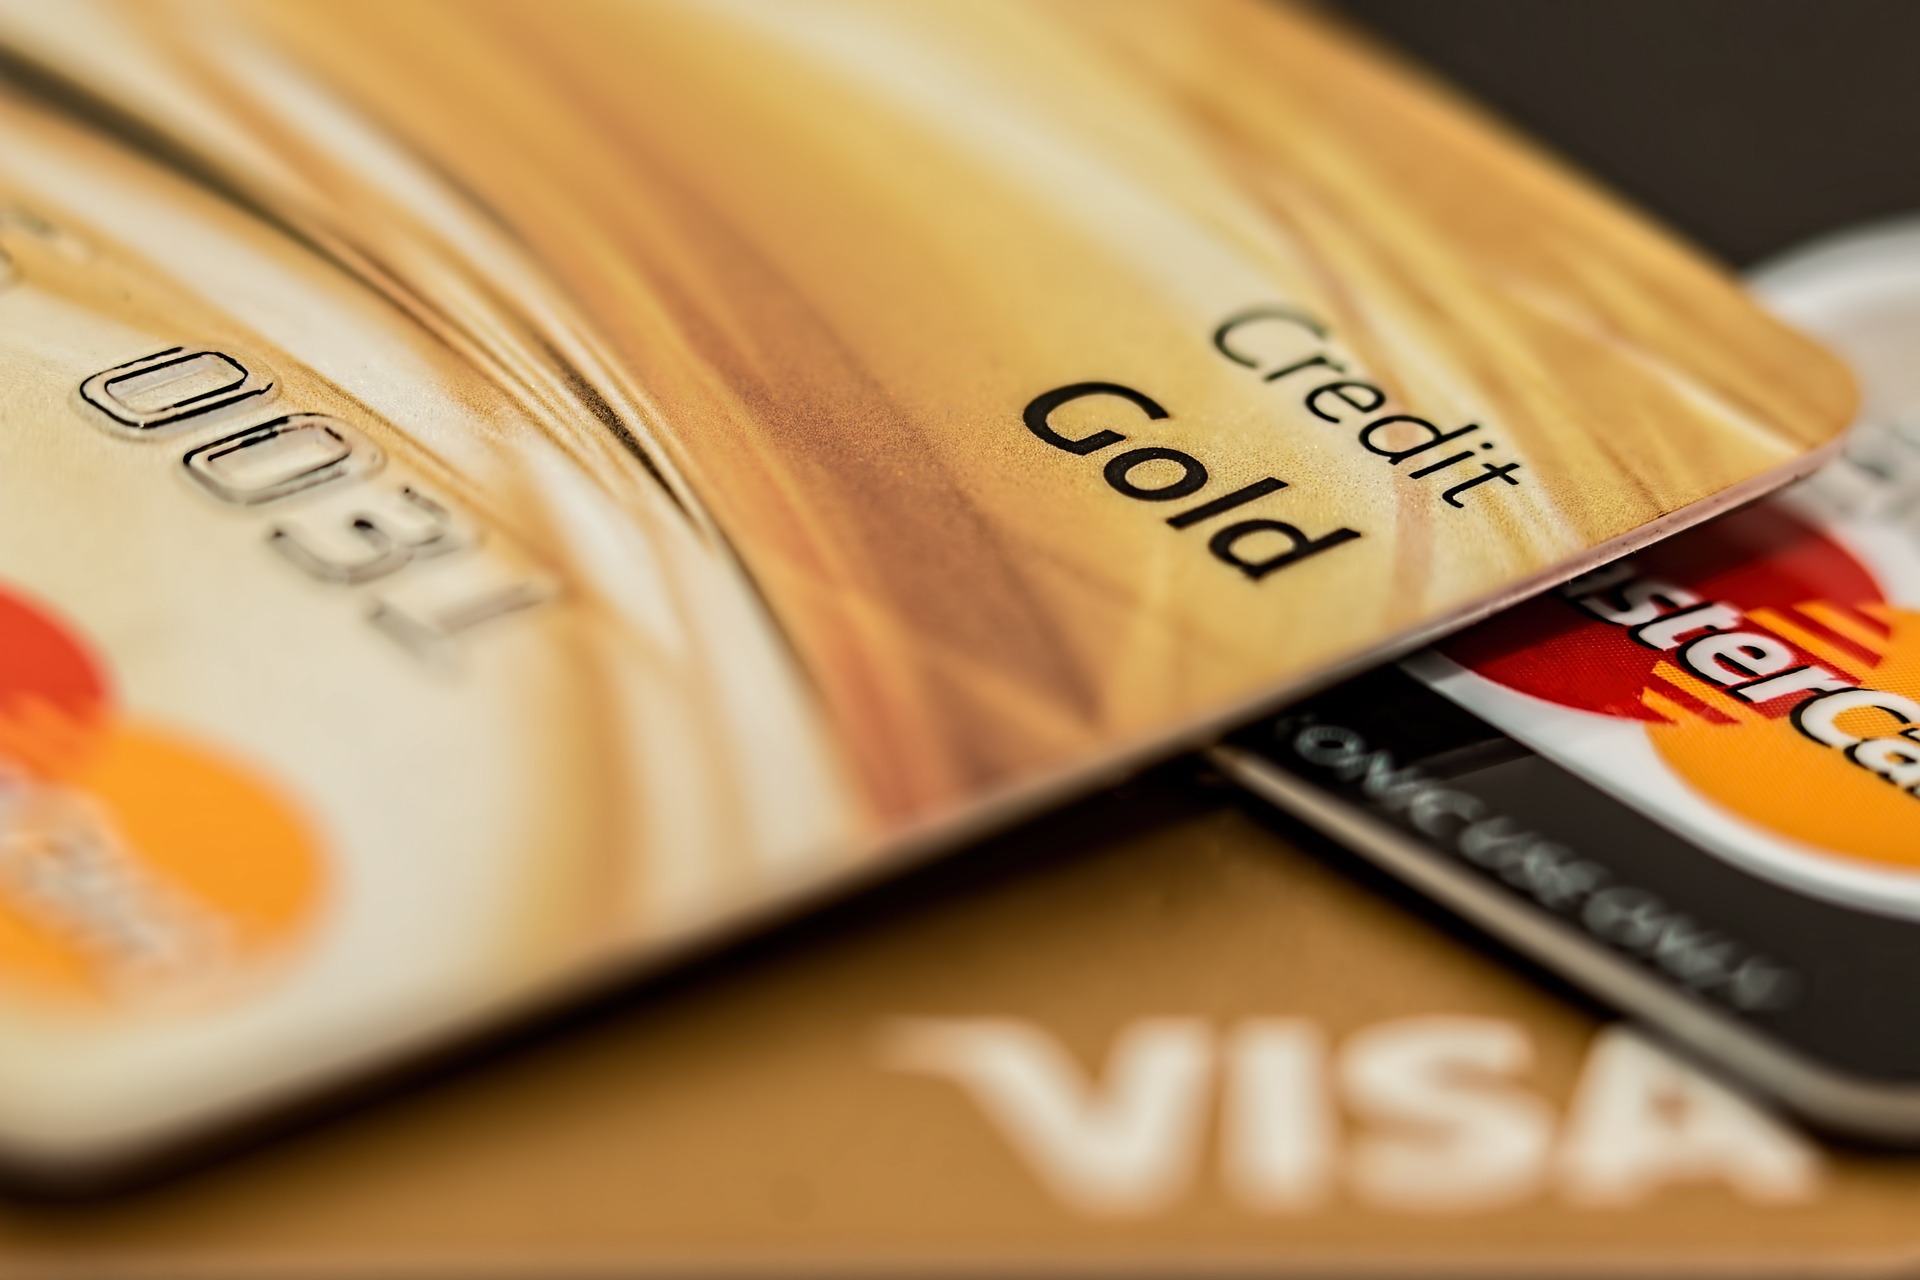 A gold credit card